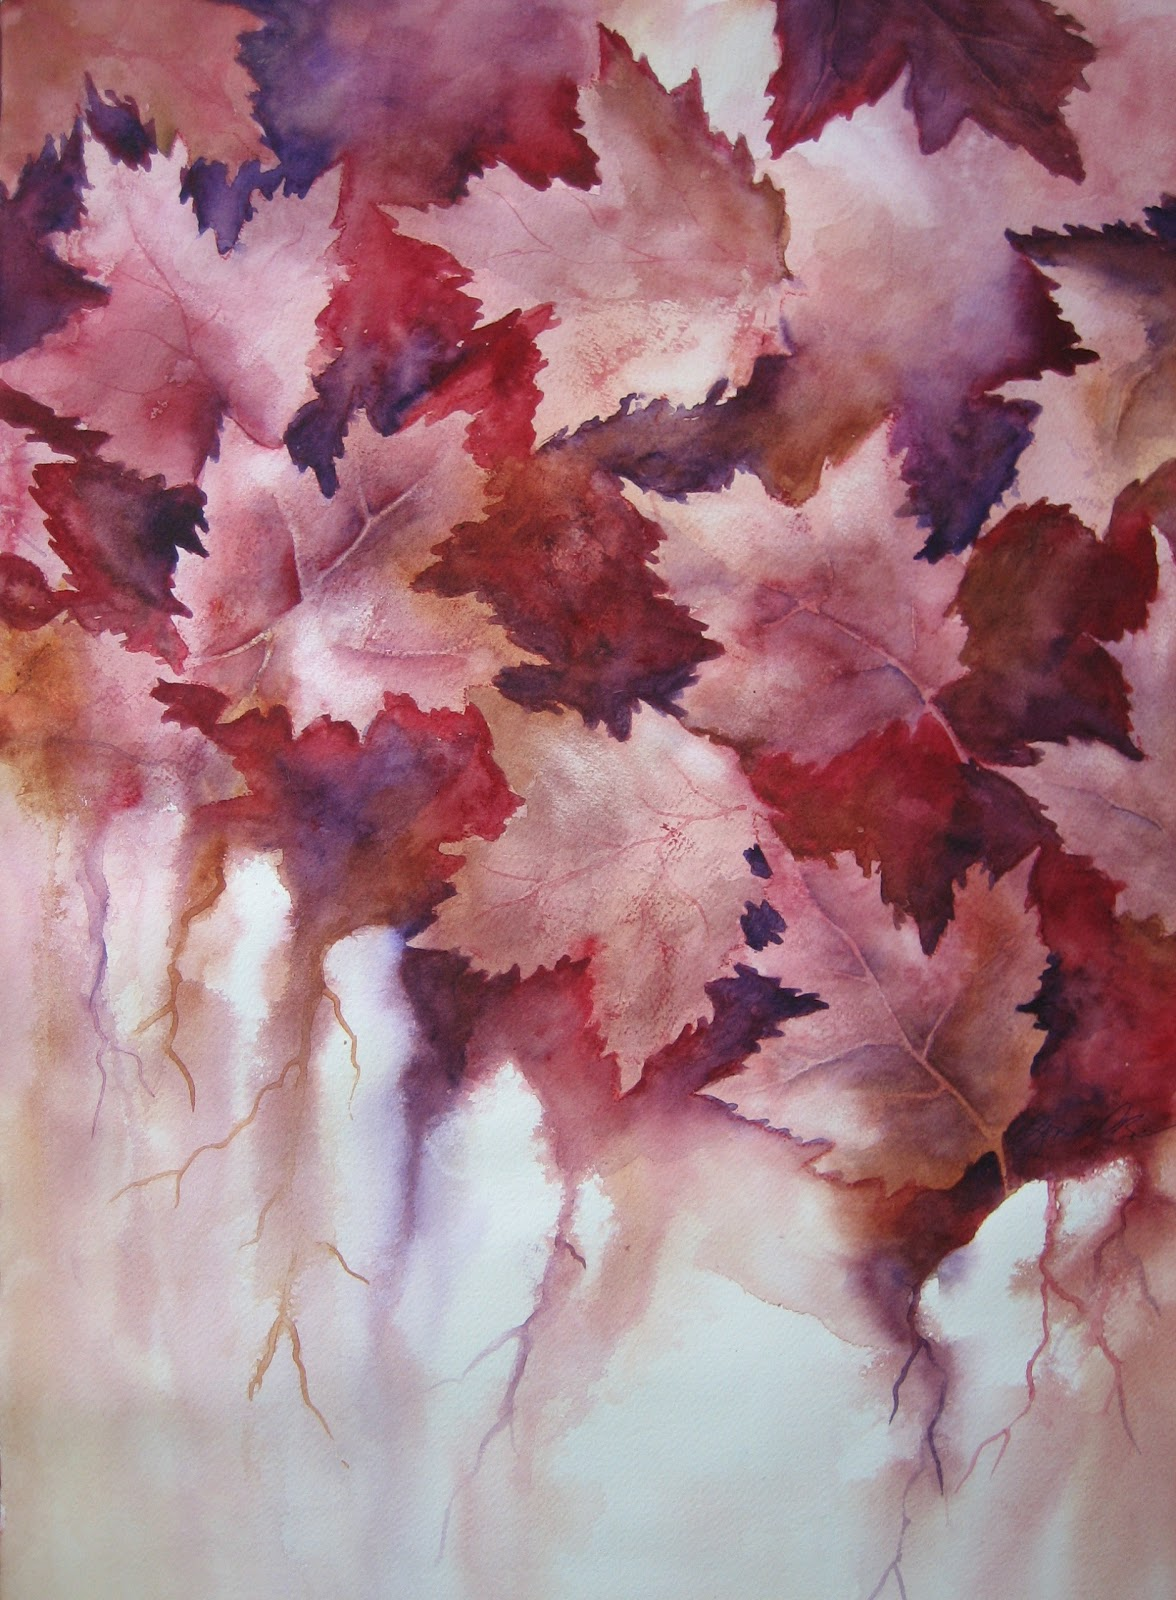 Video: How to Paint Leaves in Watercolor | eHow.com